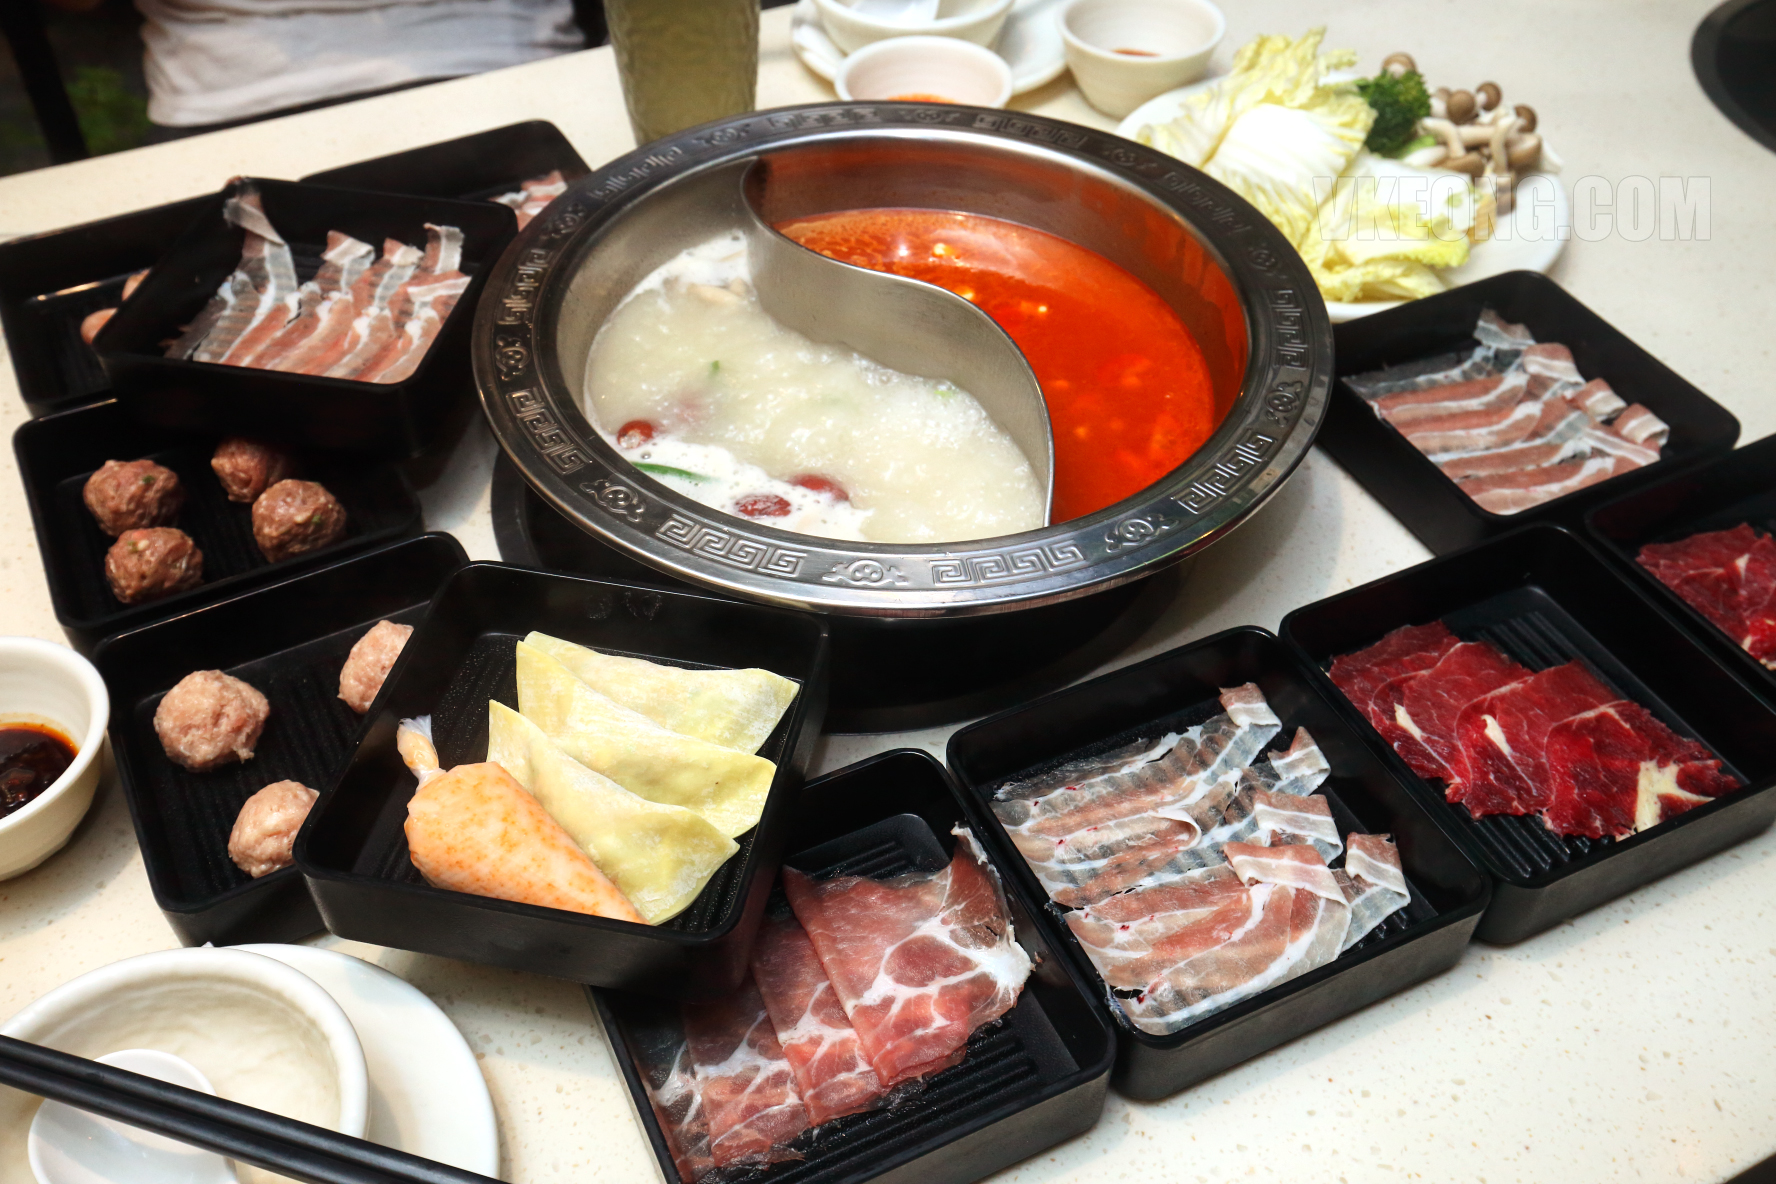 Fei-Fan-Hong-Kong-Buffet-Hot-Pot